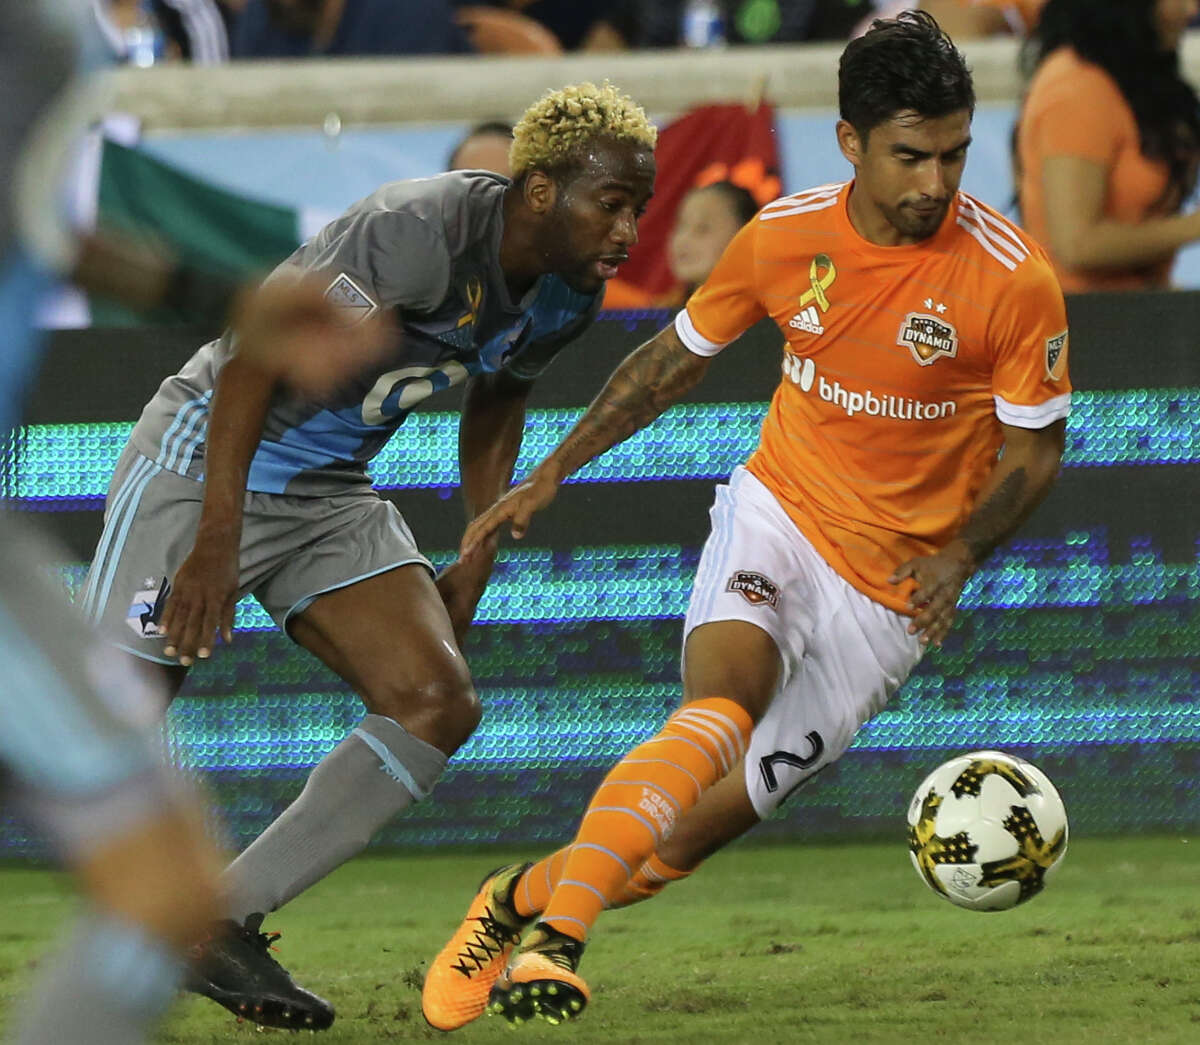 Houston Dynamo defender A. J. DeLaGarza (20) gets the ball away from Minnesota United midfielder Kevin Molino (18) while defensing Molino during the first half of a Major League Soccer game at BBVA Compass Stadiuym Saturday, Sept. 30, 2017, in Houston. ( Yi-Chin Lee / Houston Chronicle )